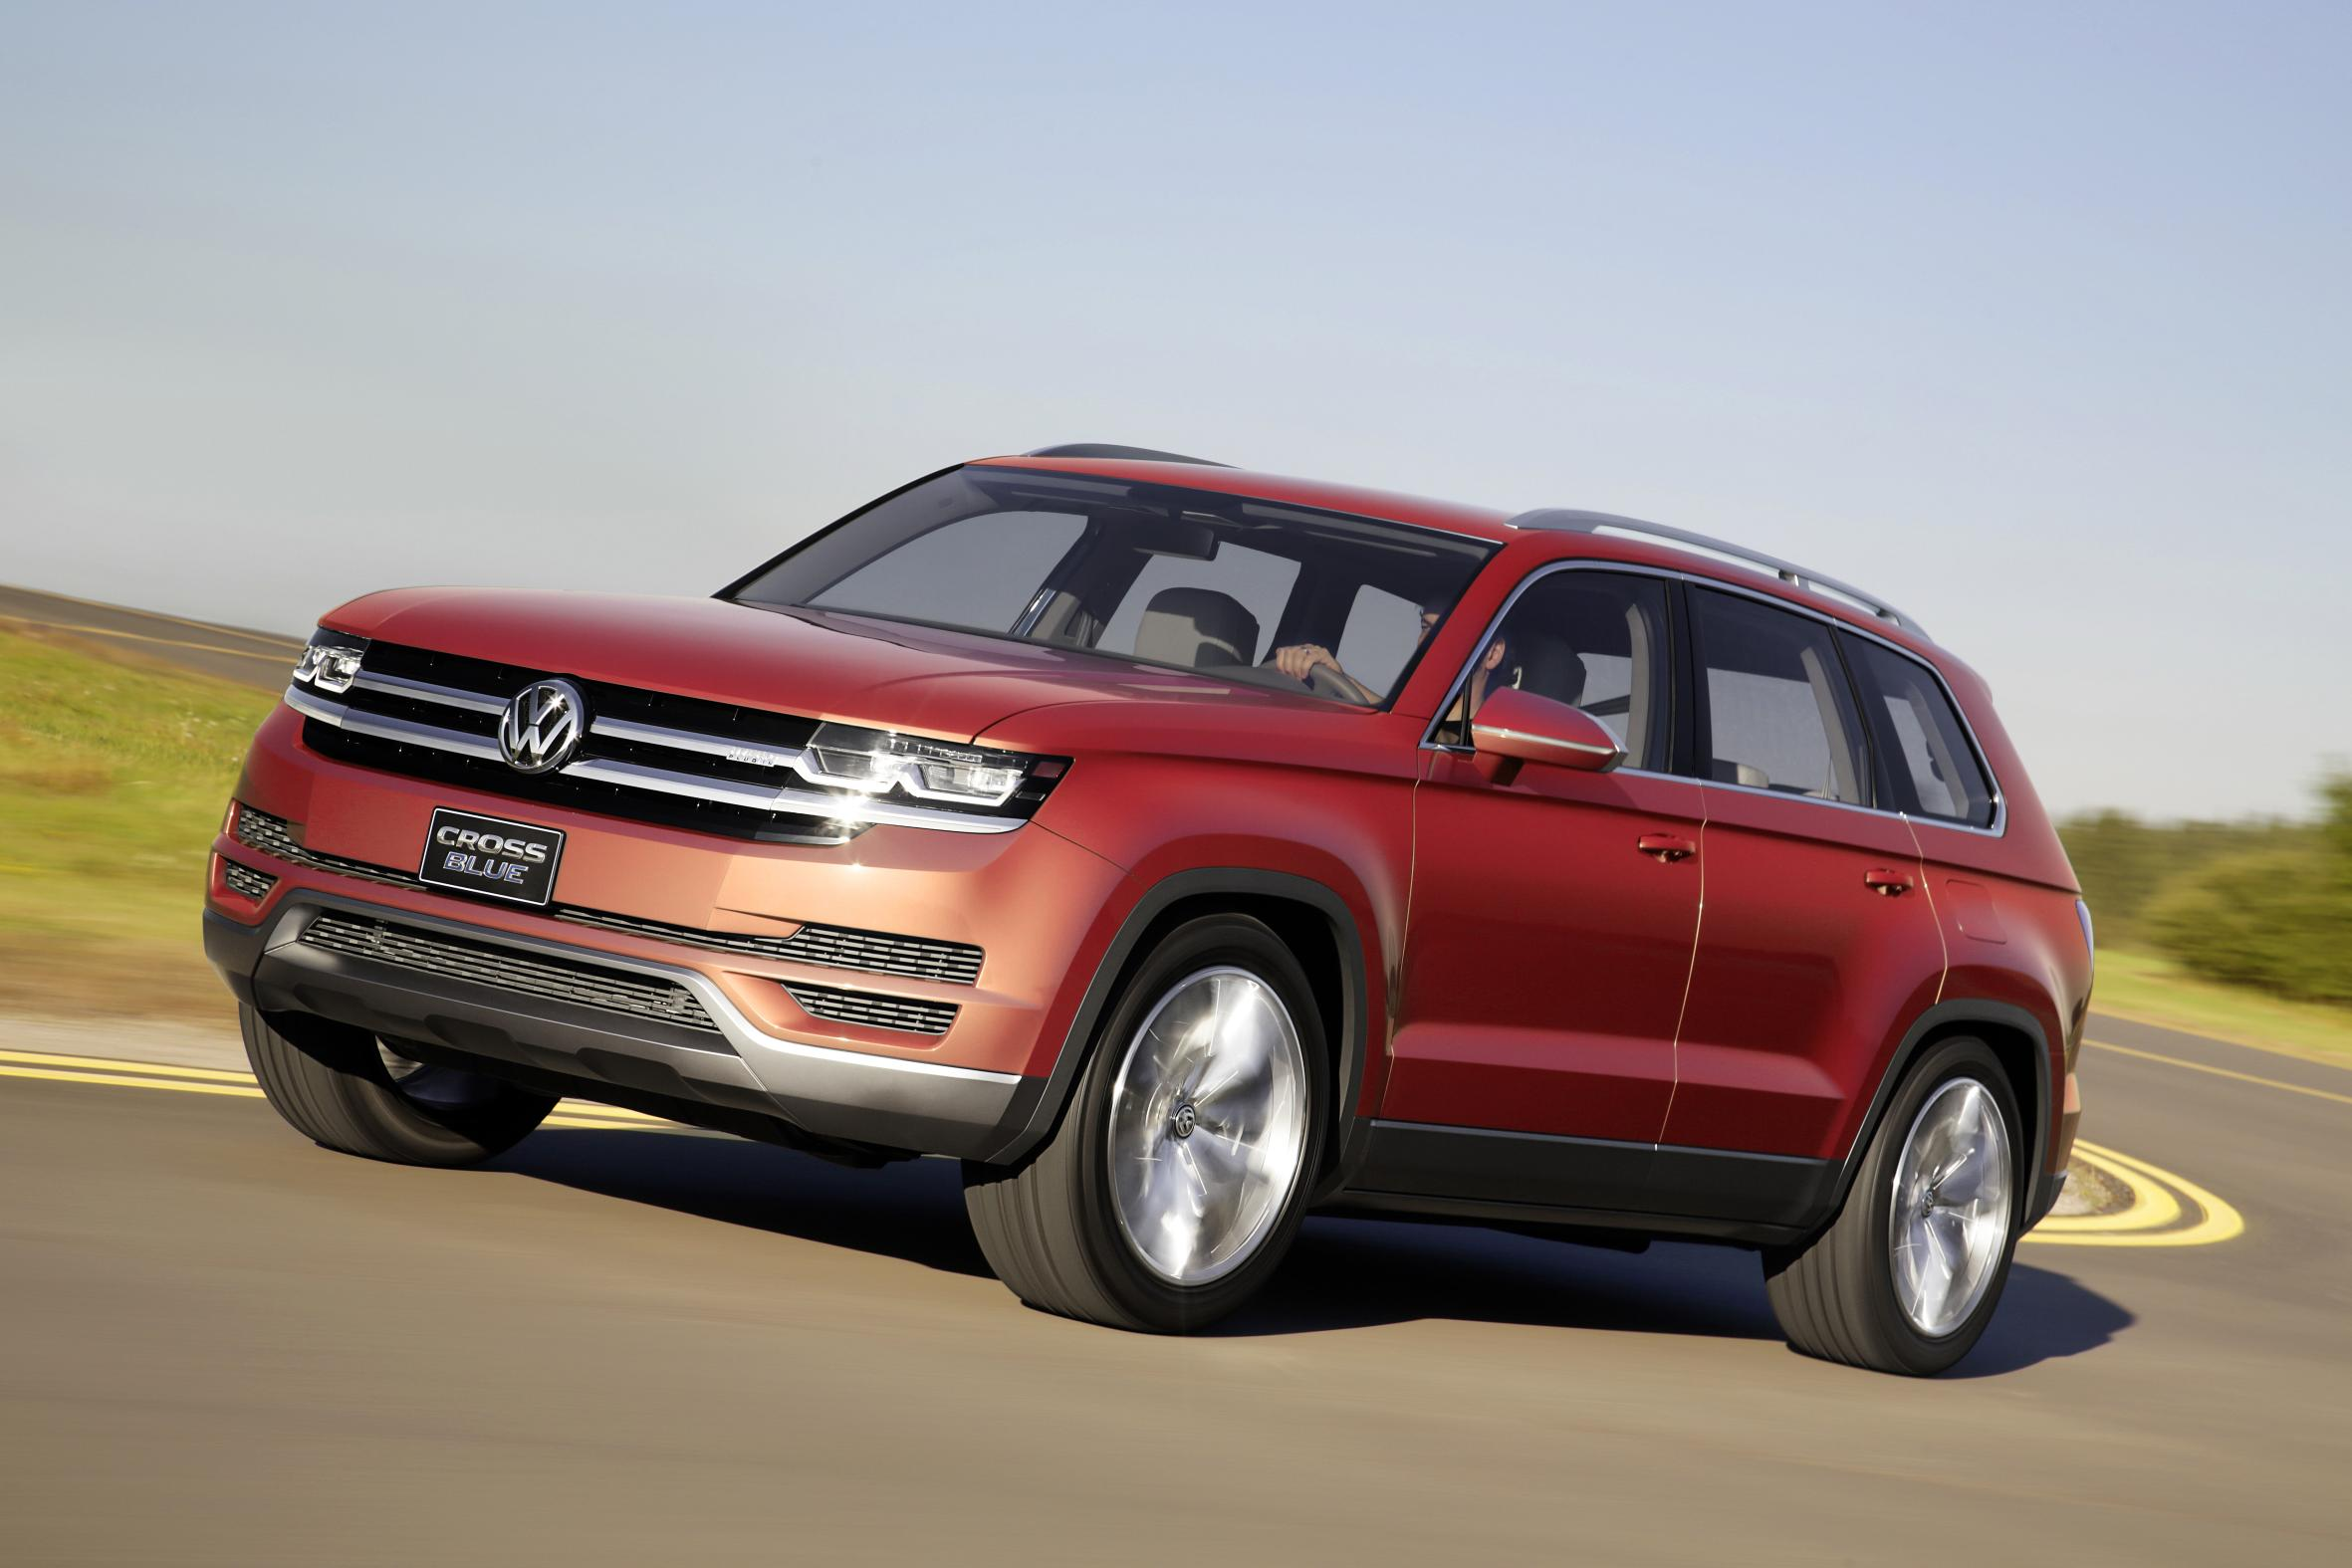 Used Cars Chattanooga >> Volkswagen's New SUV Will Be Named Atlas, German Media Says - autoevolution